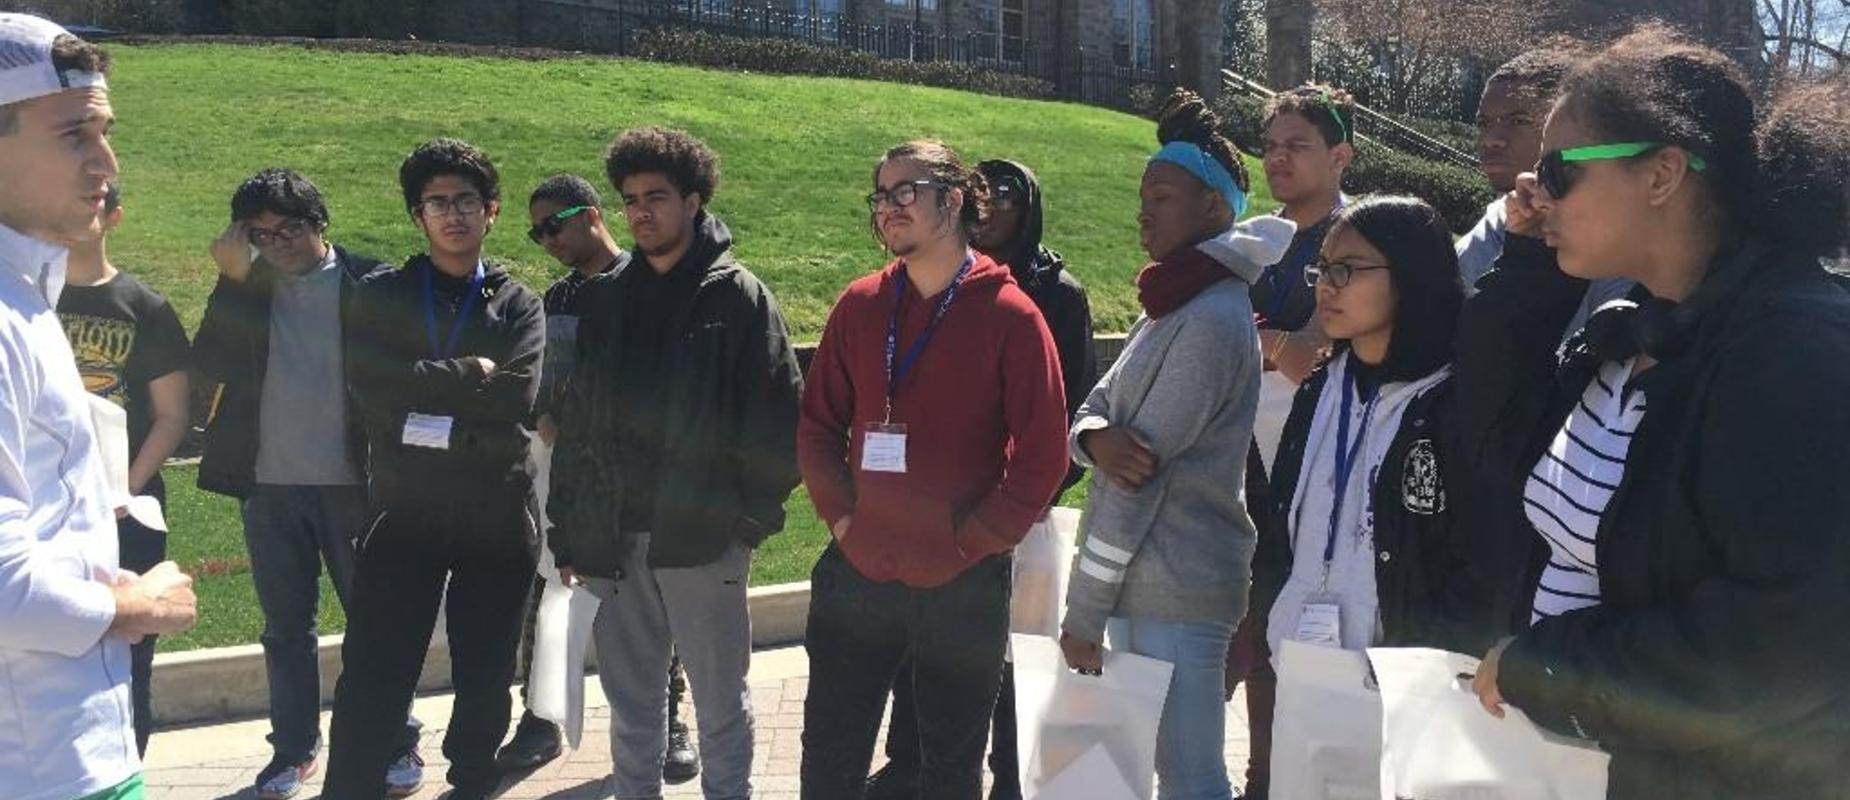 Rising Seniors on a campus tour of Lehigh University